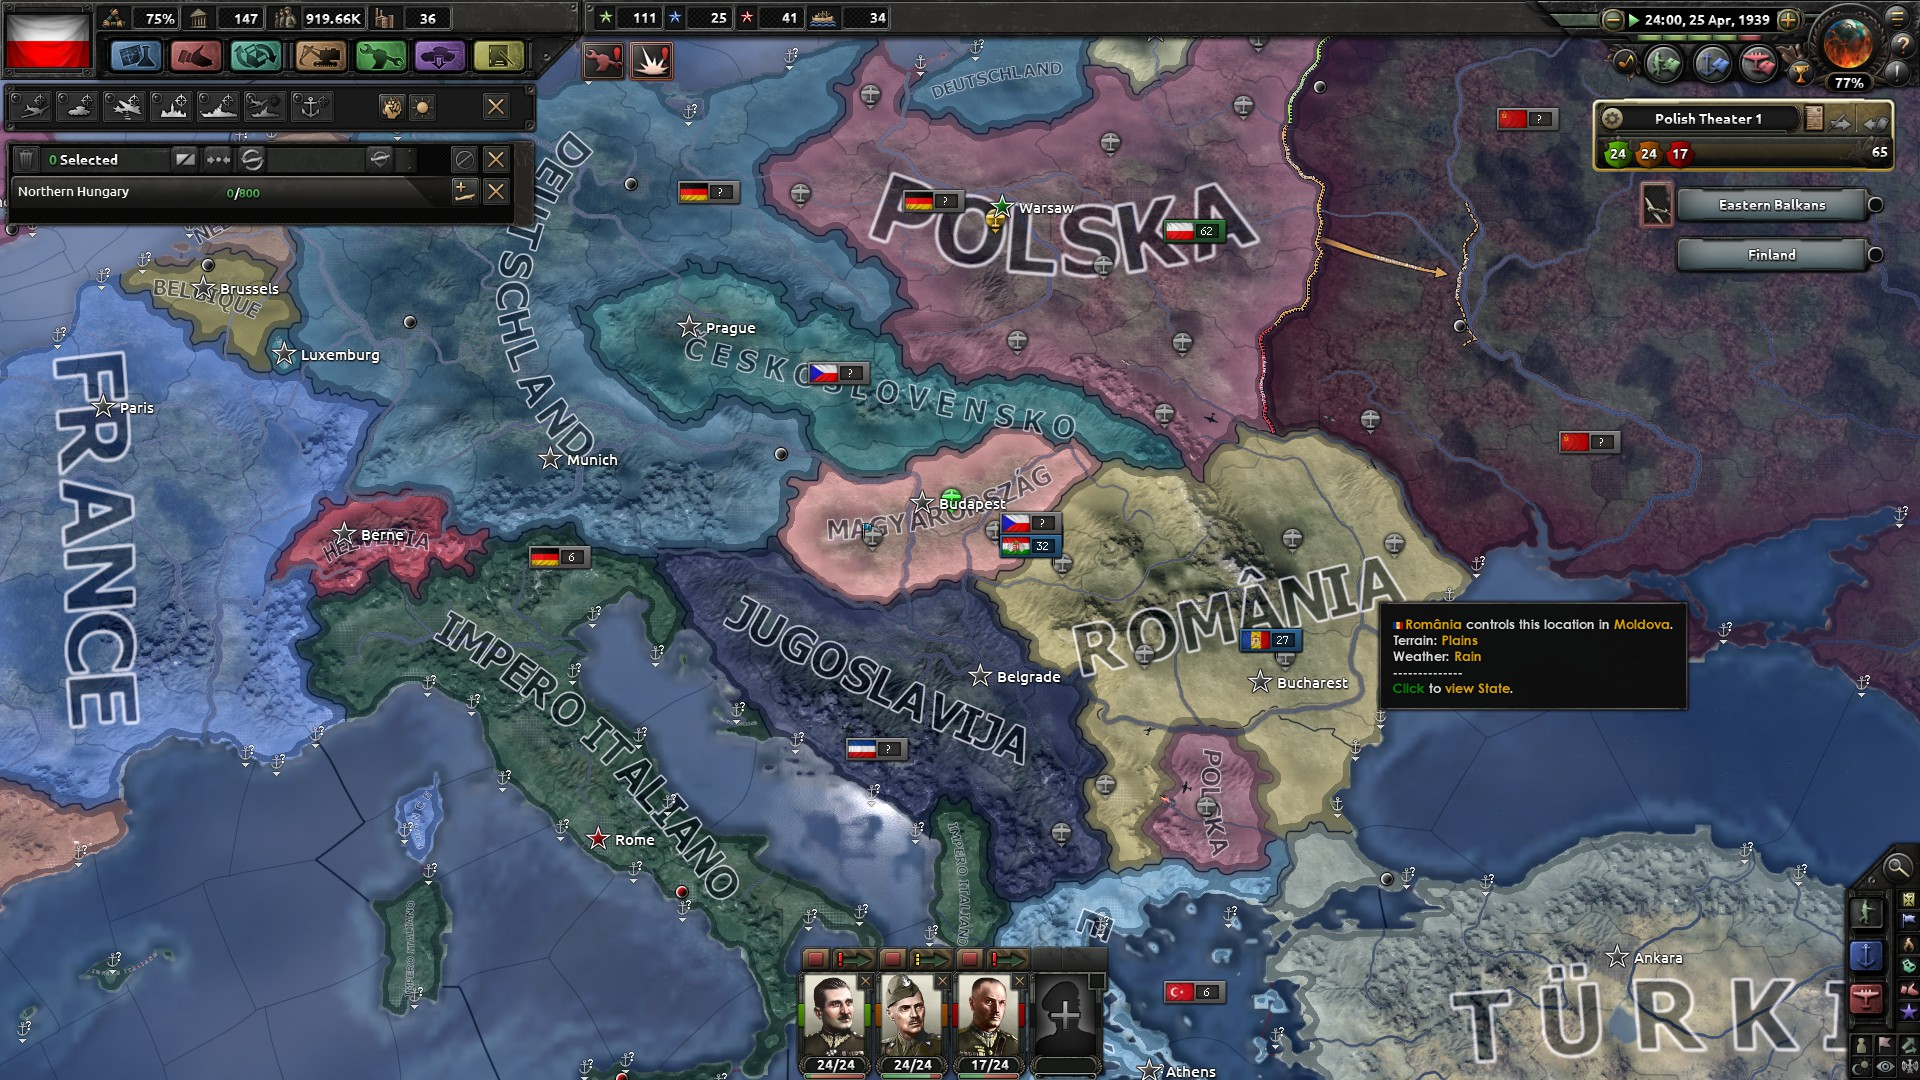 Polska run: Poland can into space, survive as Międzymorze and Hoi4